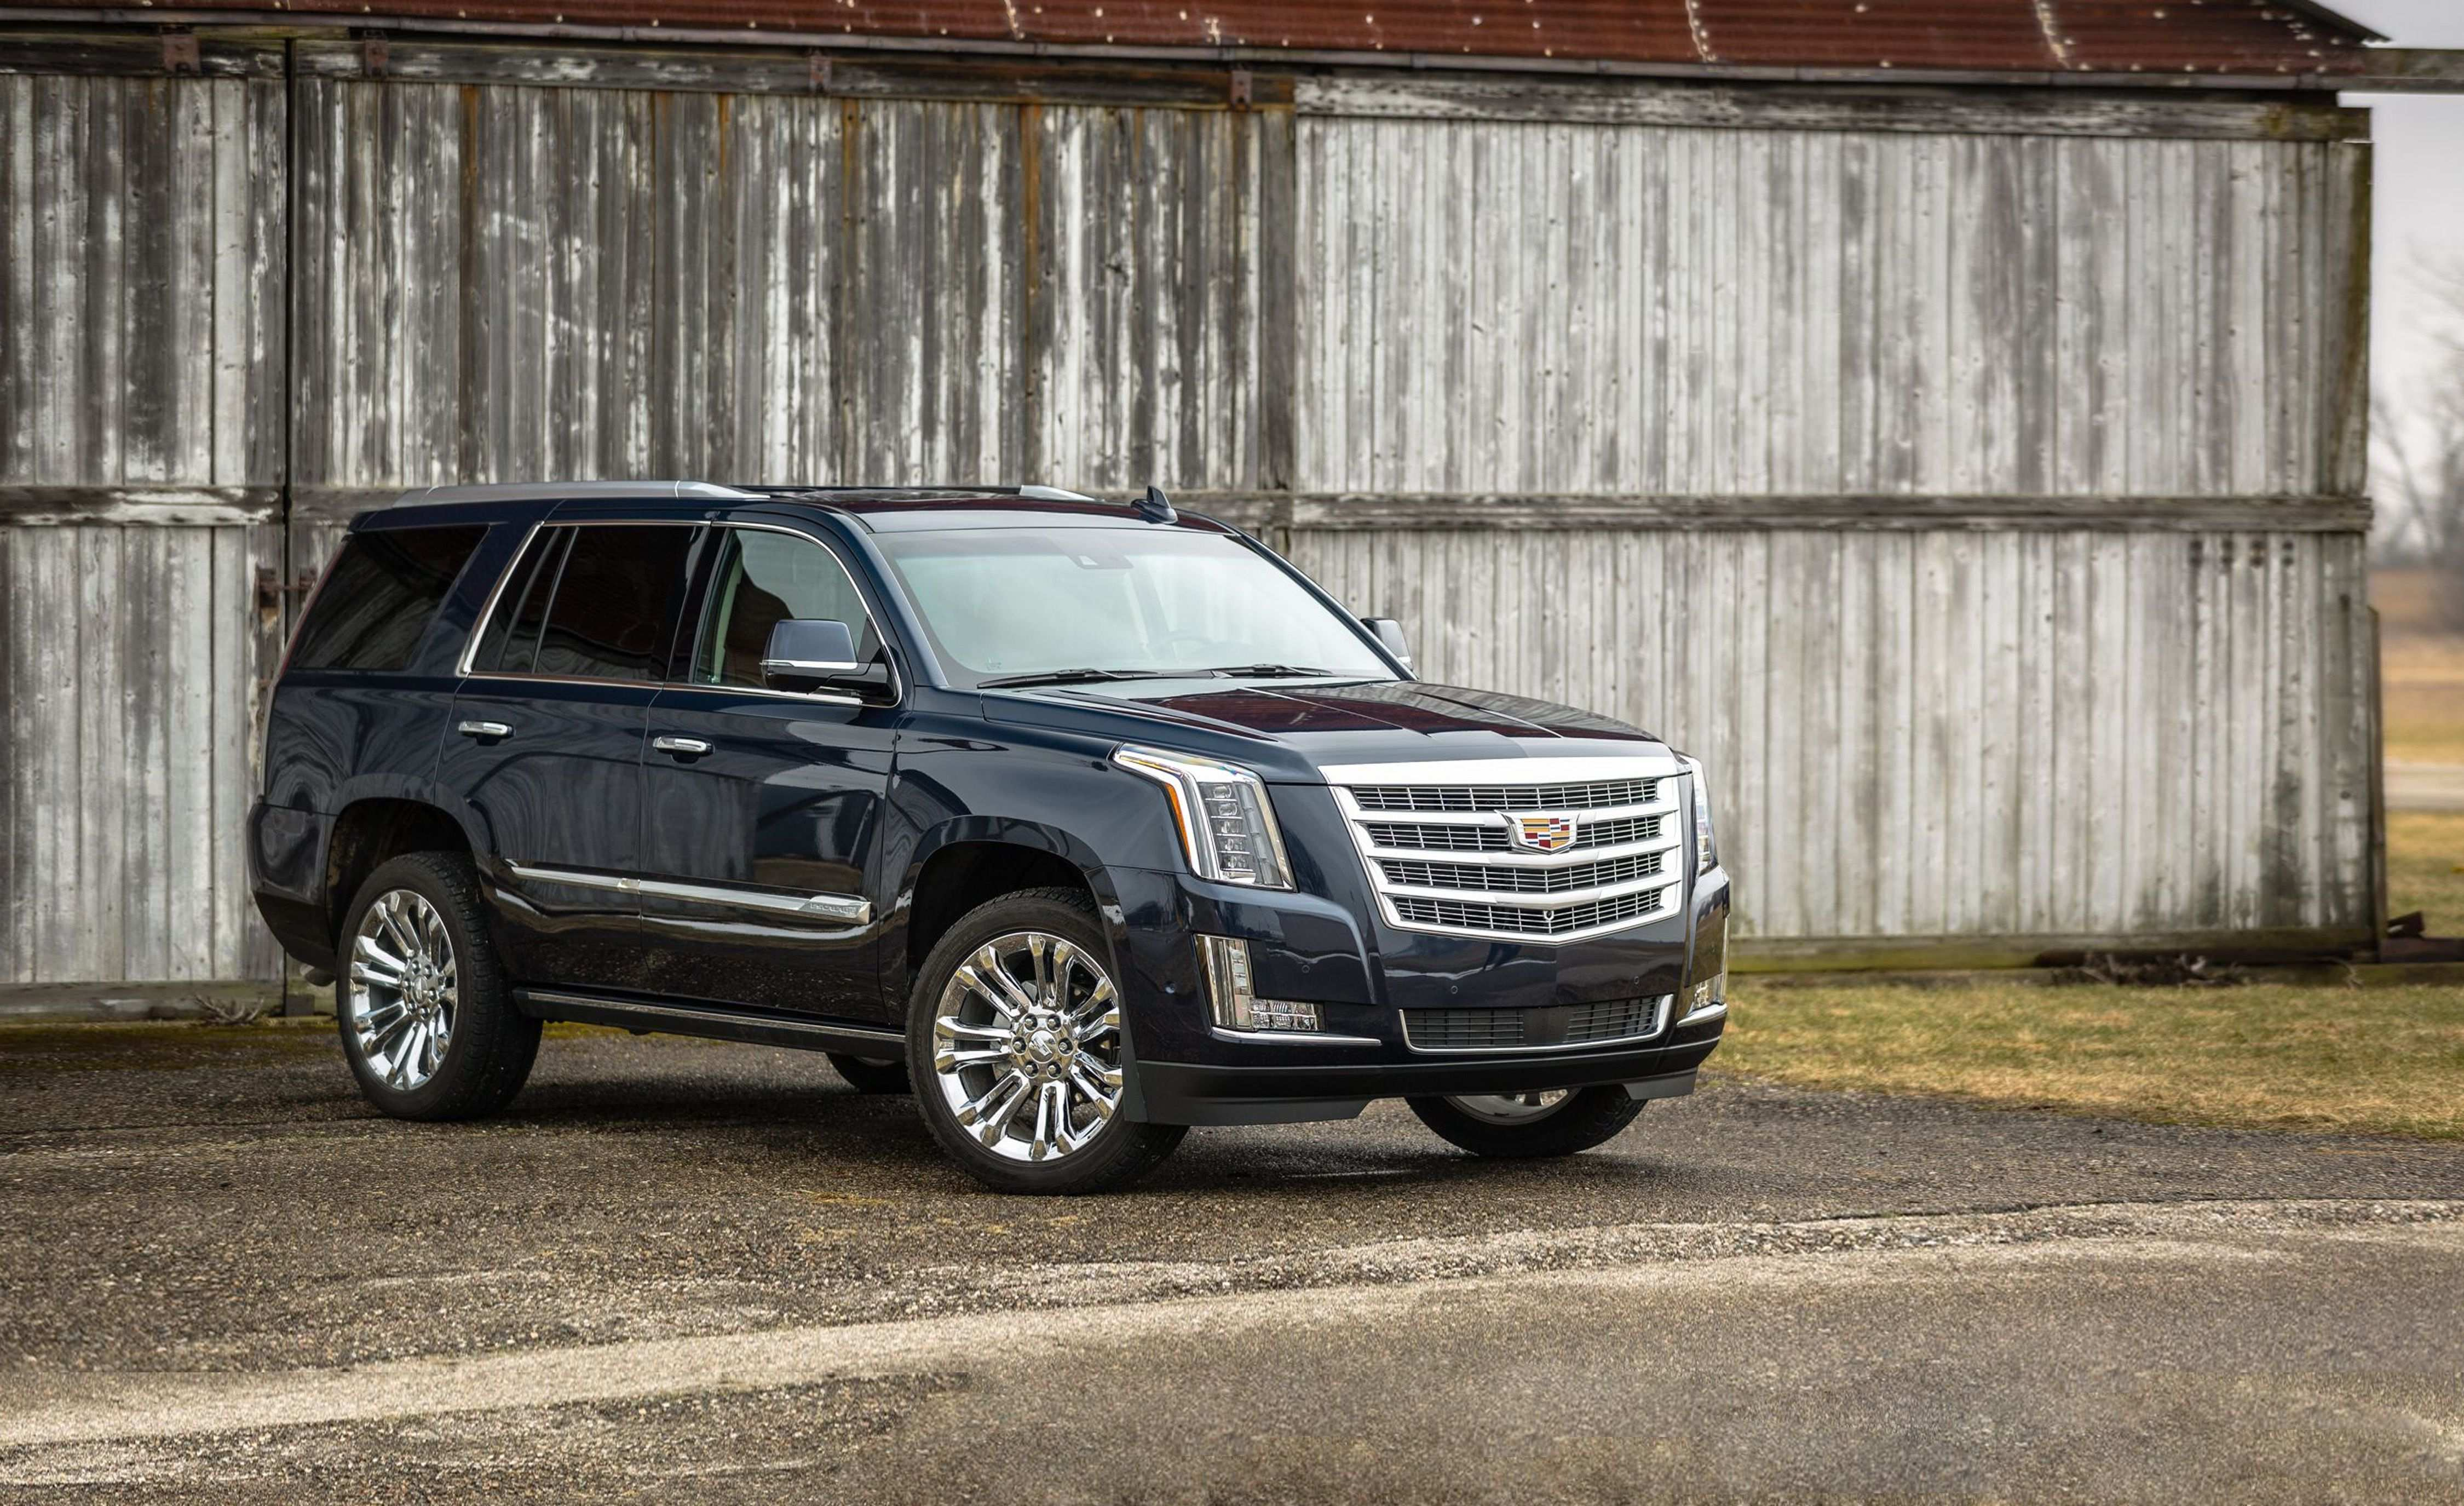 33 Gallery of New 2019 Cadillac Escalade Build New Review Reviews with New 2019 Cadillac Escalade Build New Review